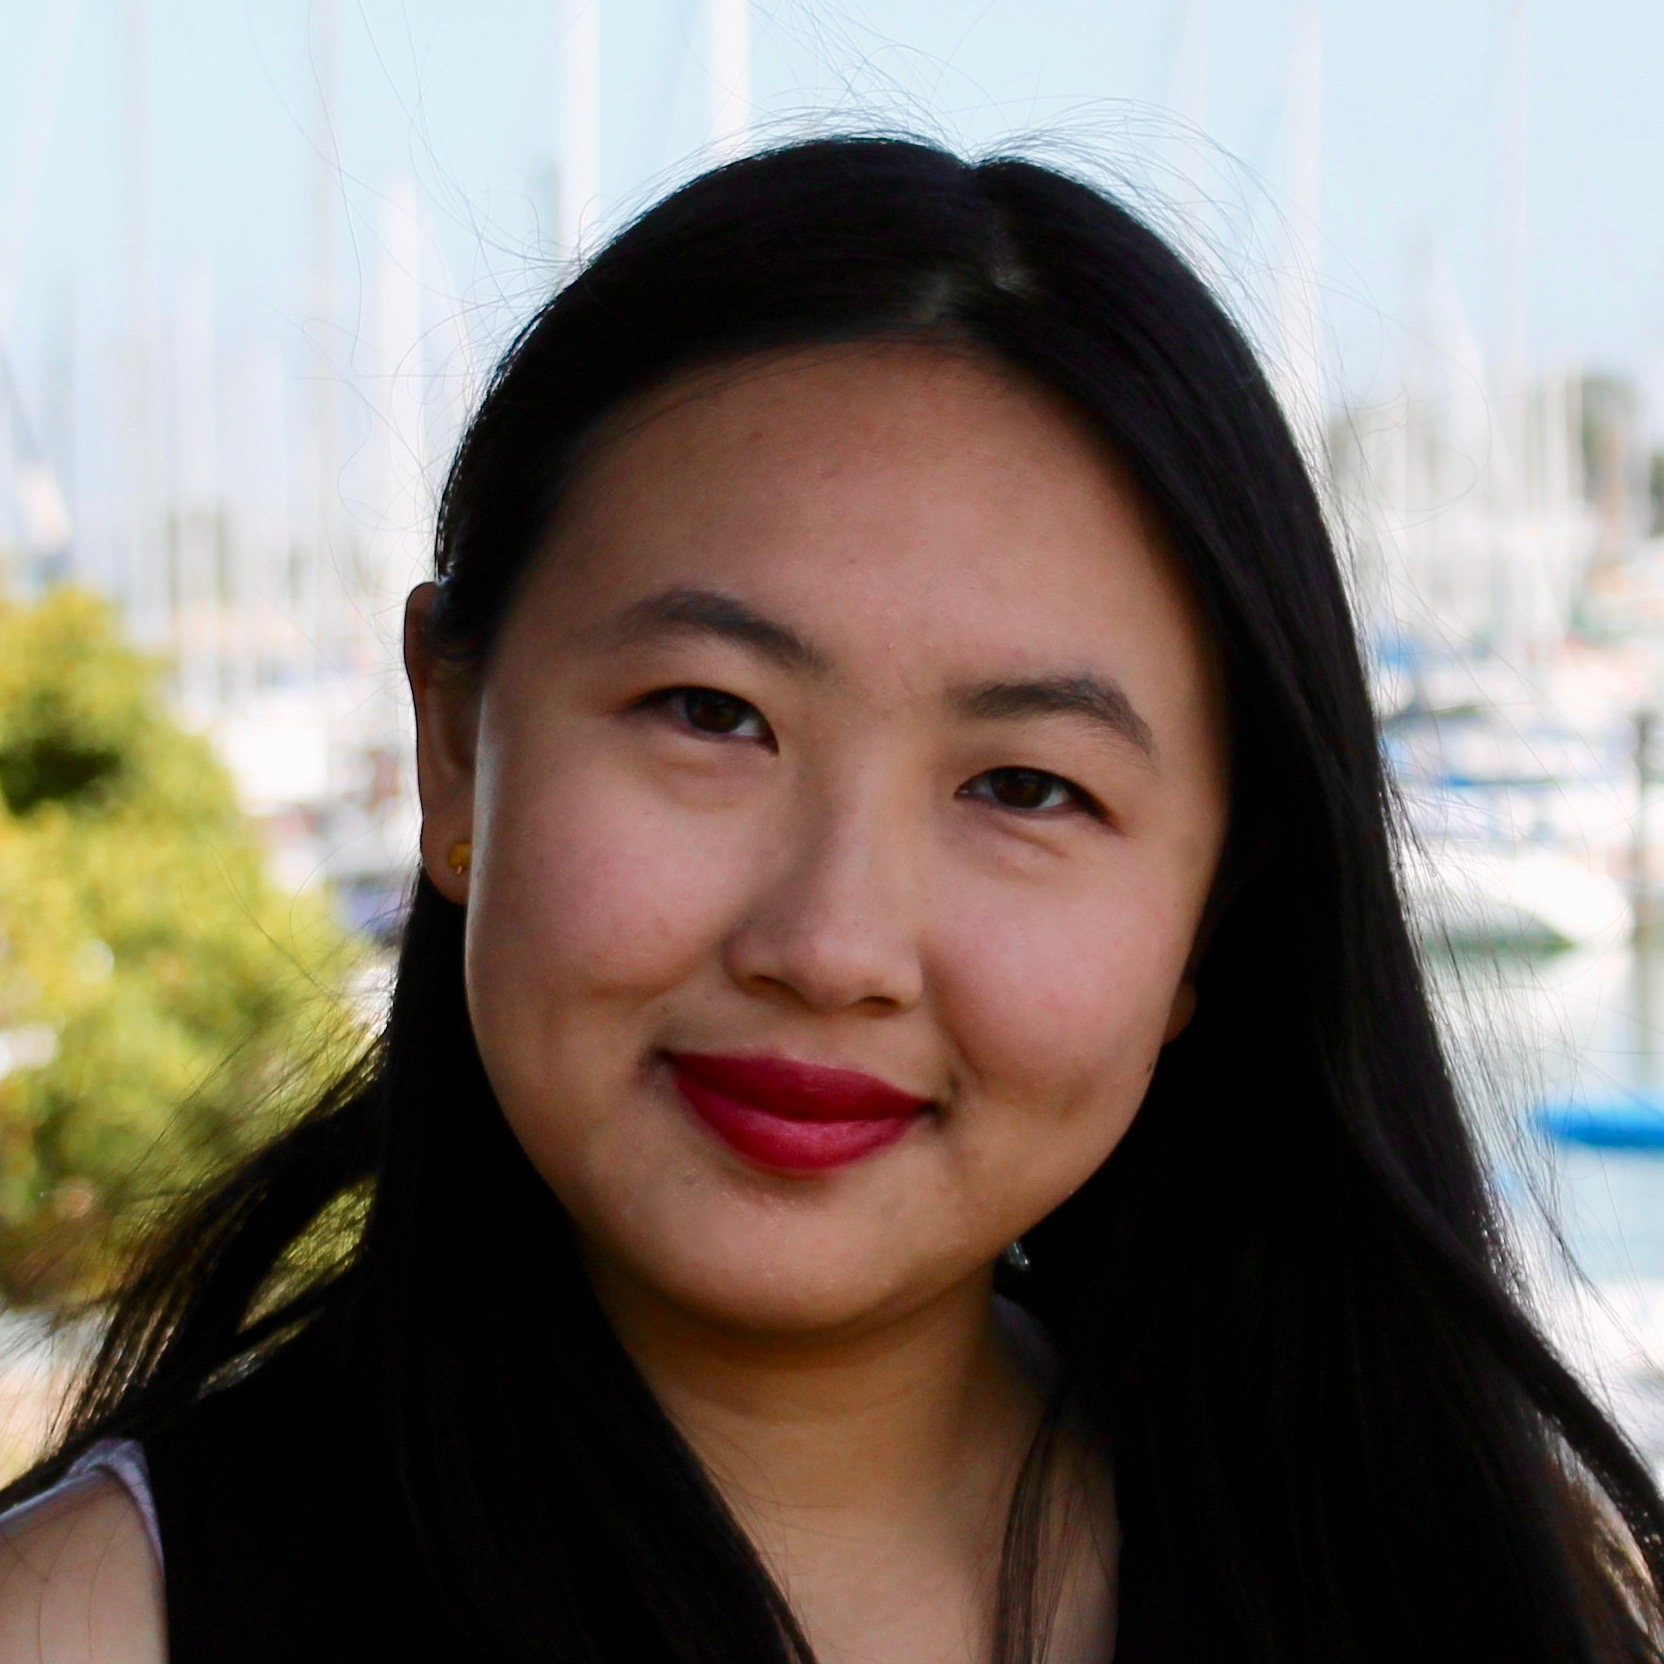 Mary Zhou, Impact Fund Development and Executive Assistant, catches up with Philip Klasky, Lecturer in Ethnic Studies at San Francisco State University